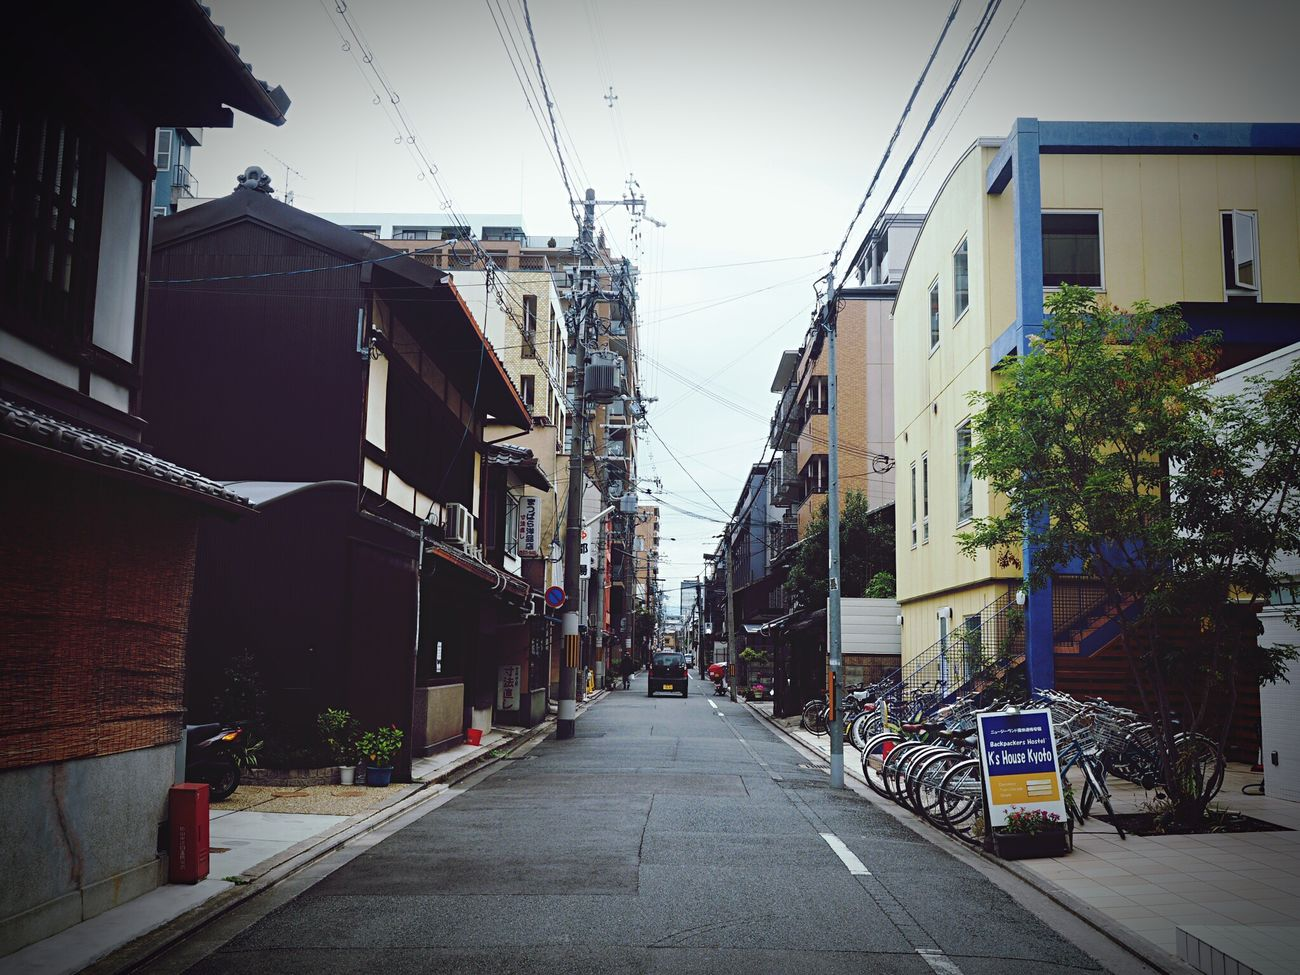 Building Exterior Built Structure Architecture City Street Outdoors The Way Forward City Street Sky Road Day Electricity Pylon No People EyeEm Japan The Week Of Eyeem EyeEm Taiwan EyeEm Best Shots 京都 Kyouto